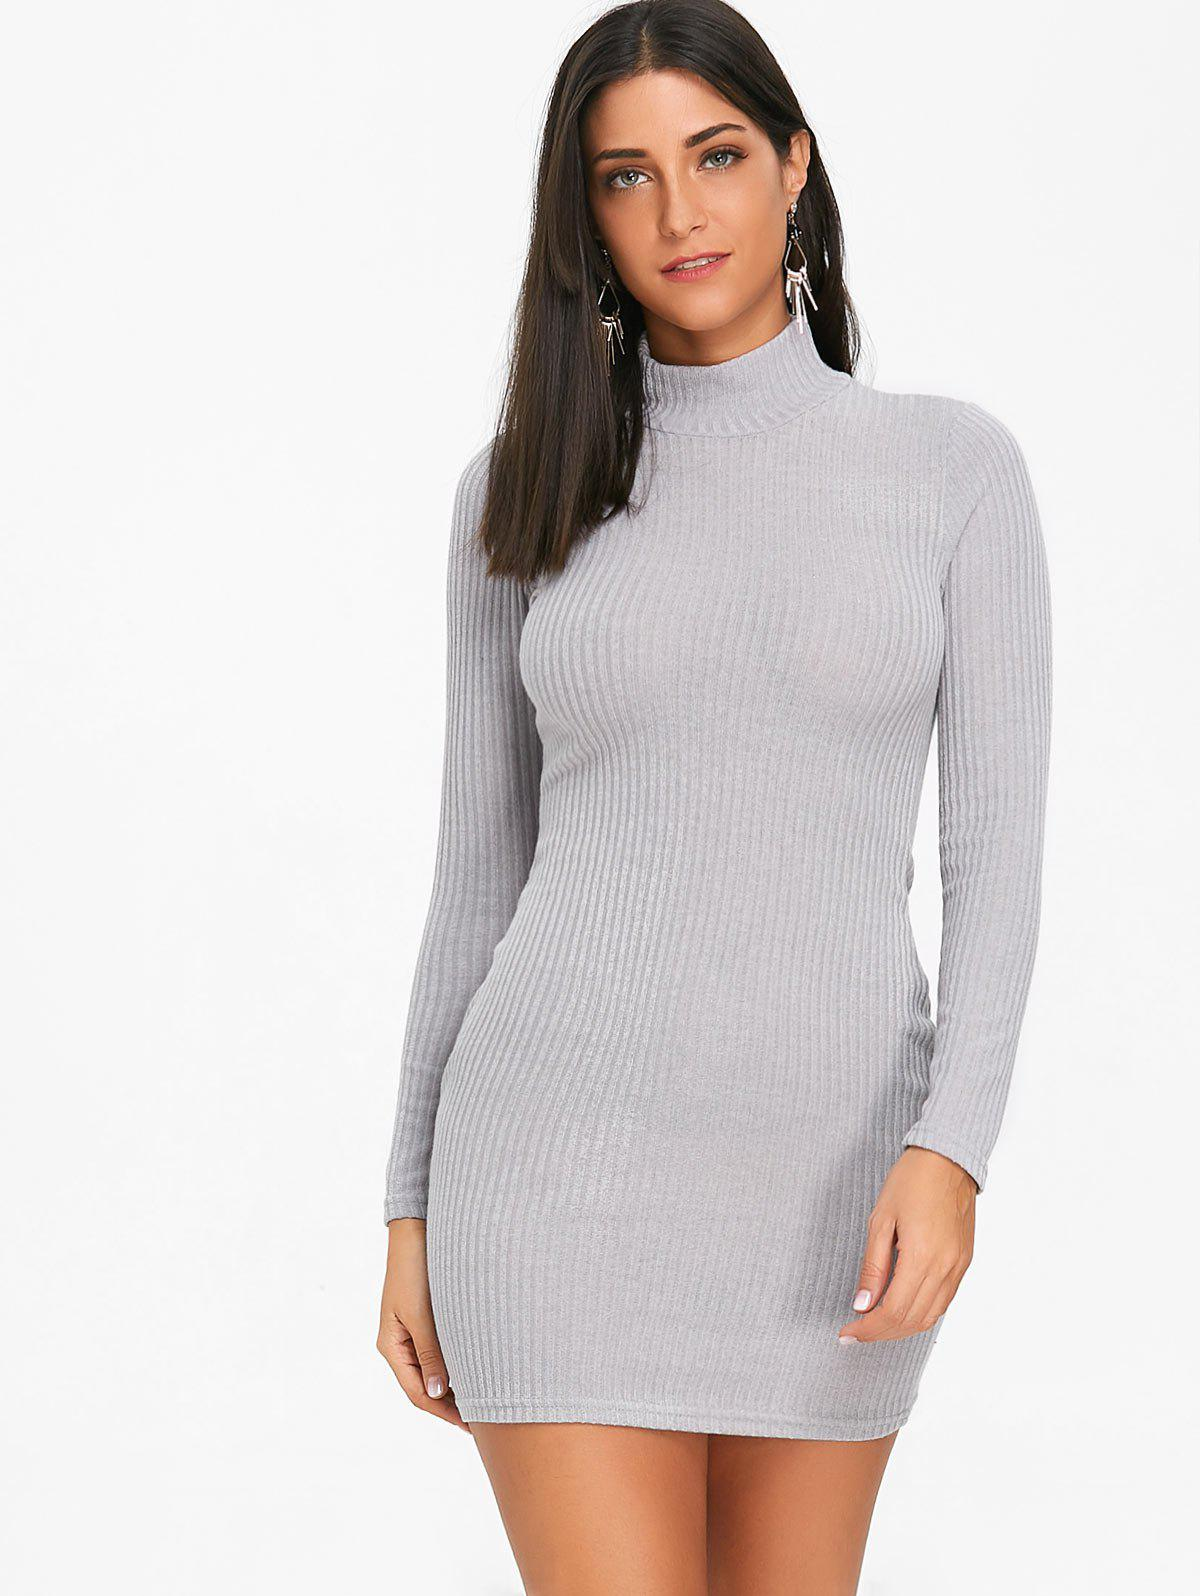 High Neck Knit Bodycon Mini Dress - GRAY L